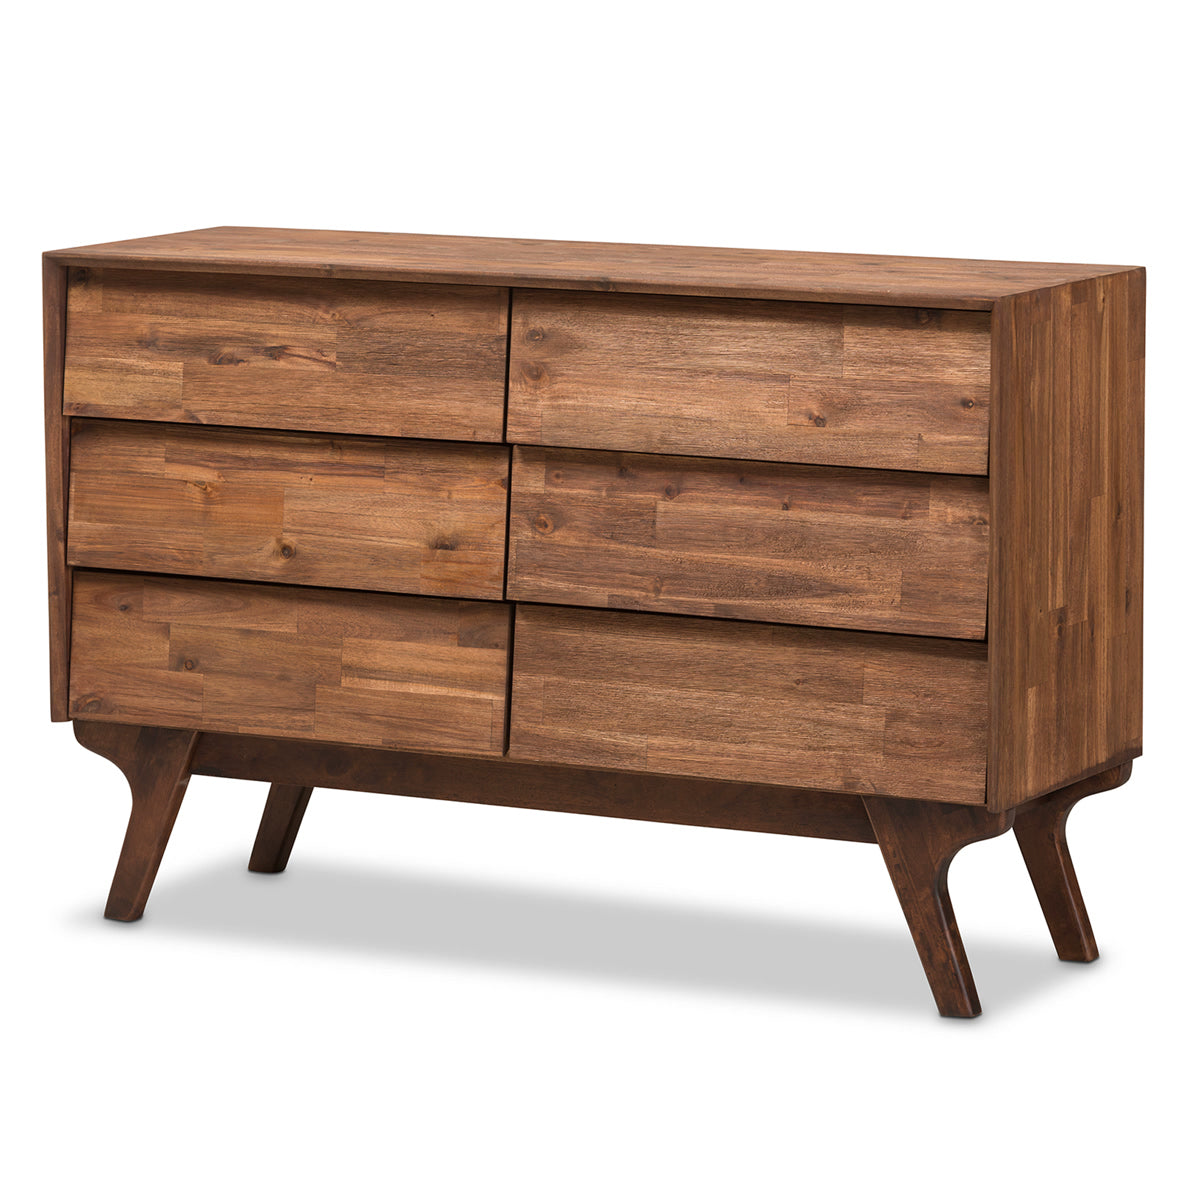 Baxton Studio Sierra Mid-Century Modern Brown Wood 6-Drawer Dresser Baxton Studio-Dresser-Minimal And Modern - 1